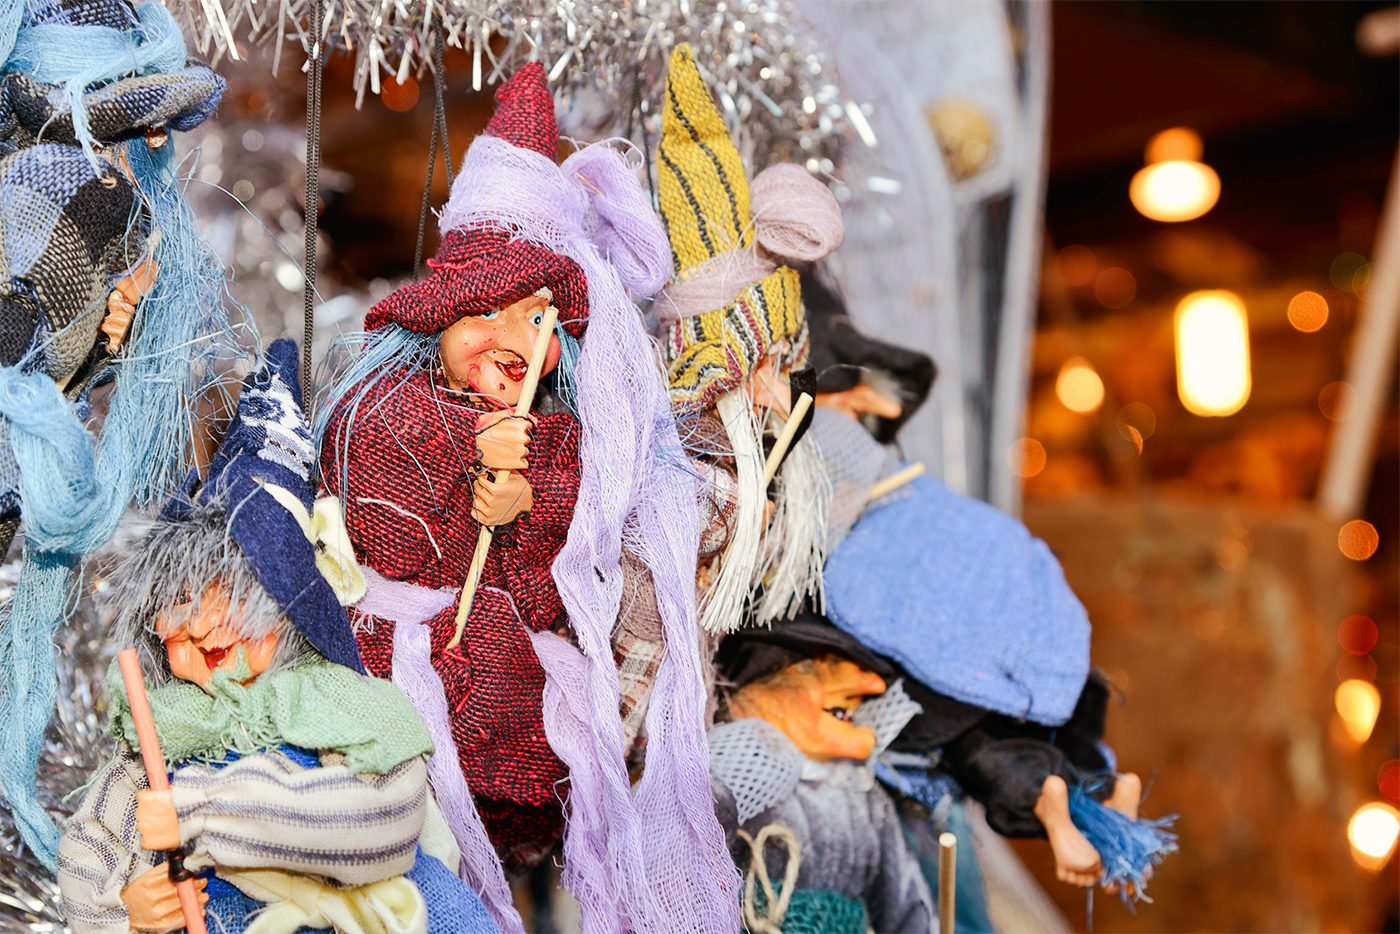 Traditional markets on the occasion of the Befana in Piazza Navona